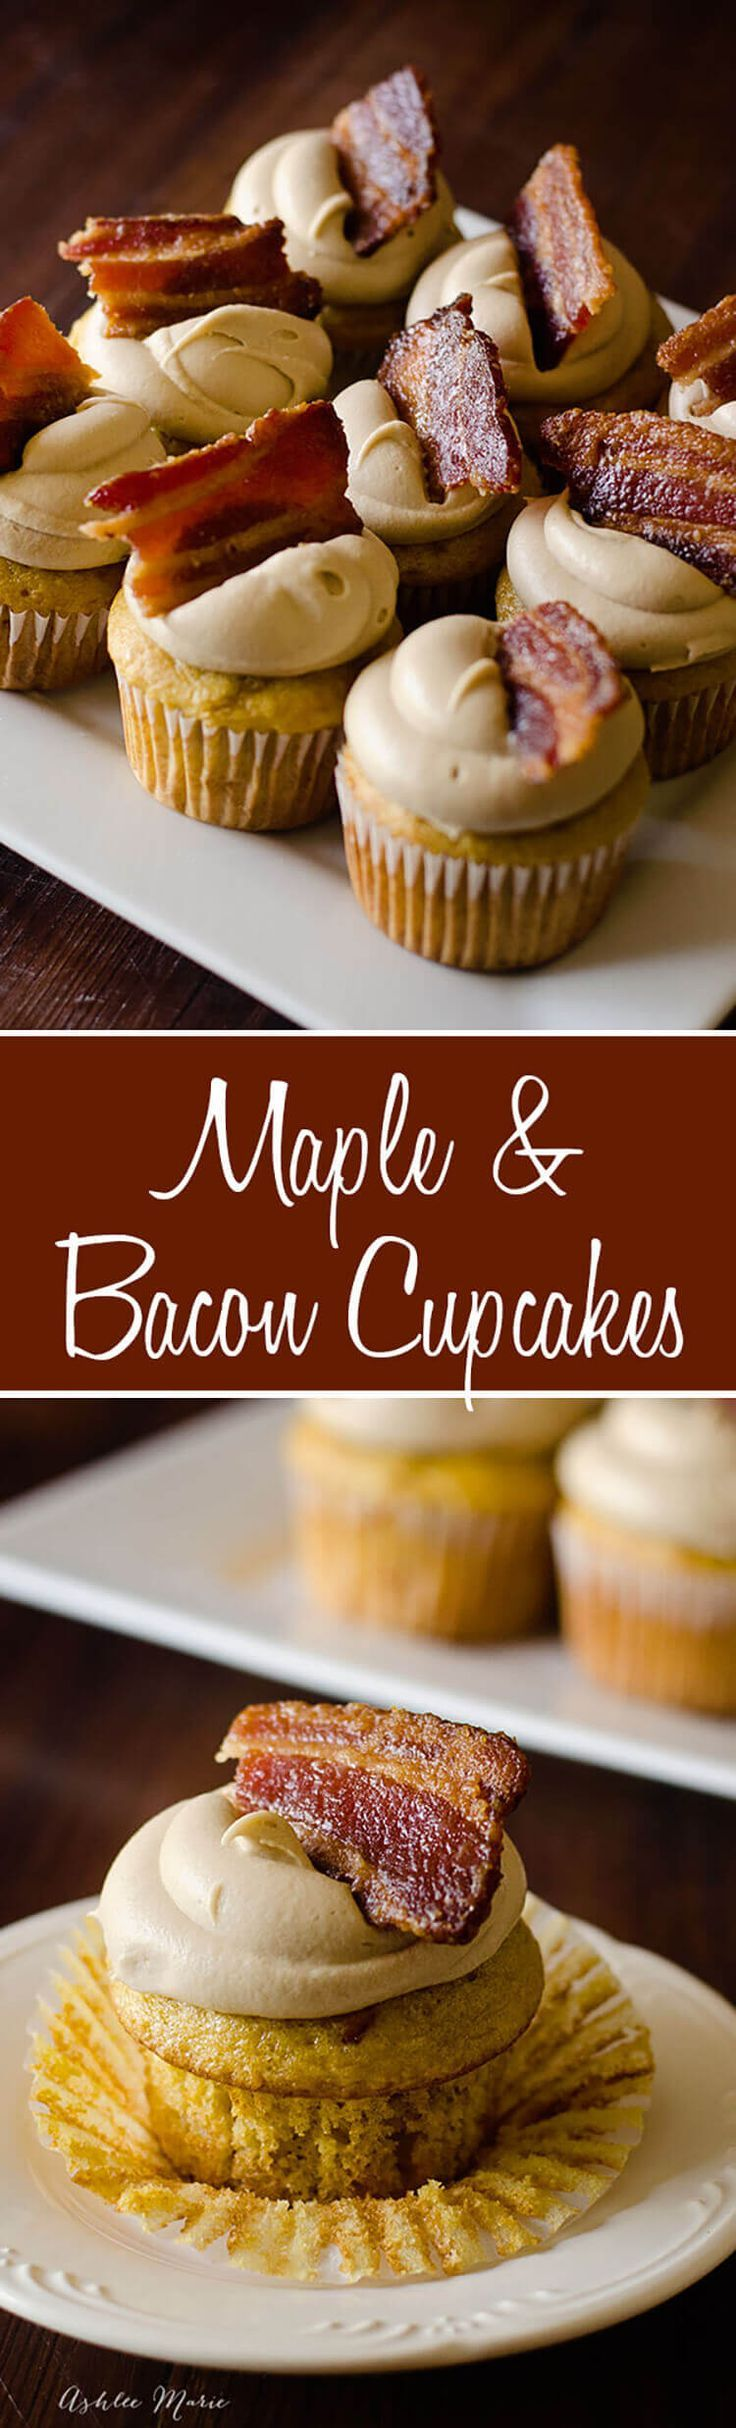 Maple & Bacon Cupcakes recipe. It doesn't get much better than candied bacon and maple. These cupcakes are easy to make and are. a copycat recipe from Epcot Disneyworld! #bacon #disney